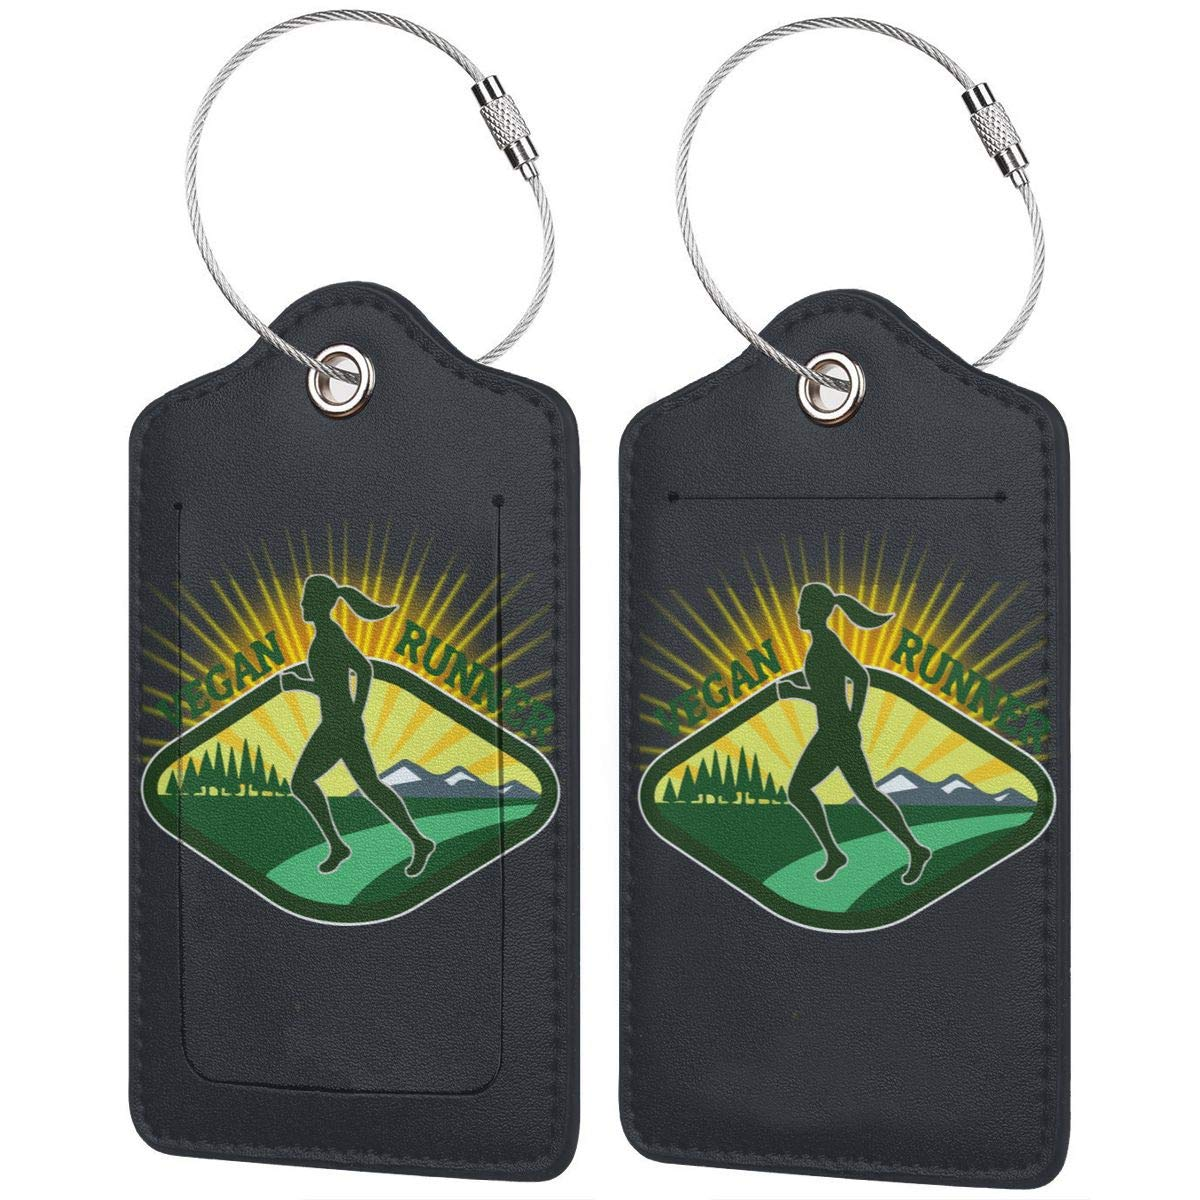 Vegan Runner Leather Luggage Tags Suitcase Tag Travel Bag Labels With Privacy Cover For Men Women 2 Pack 4 Pack